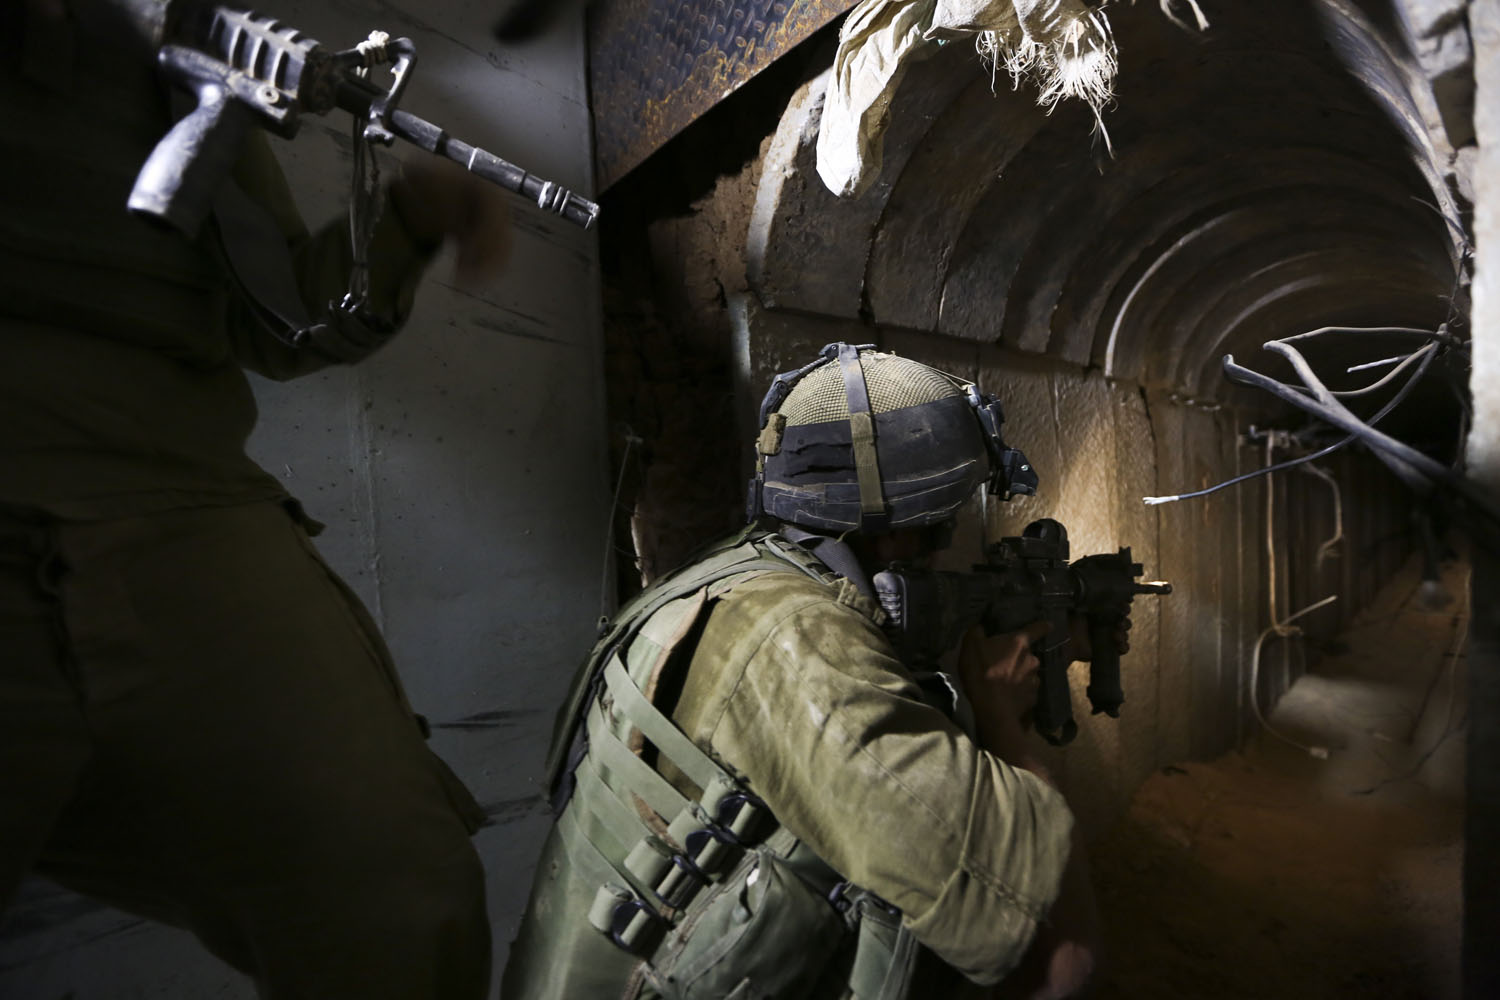 Jul. 30, 2014. Israel Defense Forces soldiers of the Paratroopers Brigade guarding and neutralizing tunnels that were dug by the Hamas organization and leading into Israel.